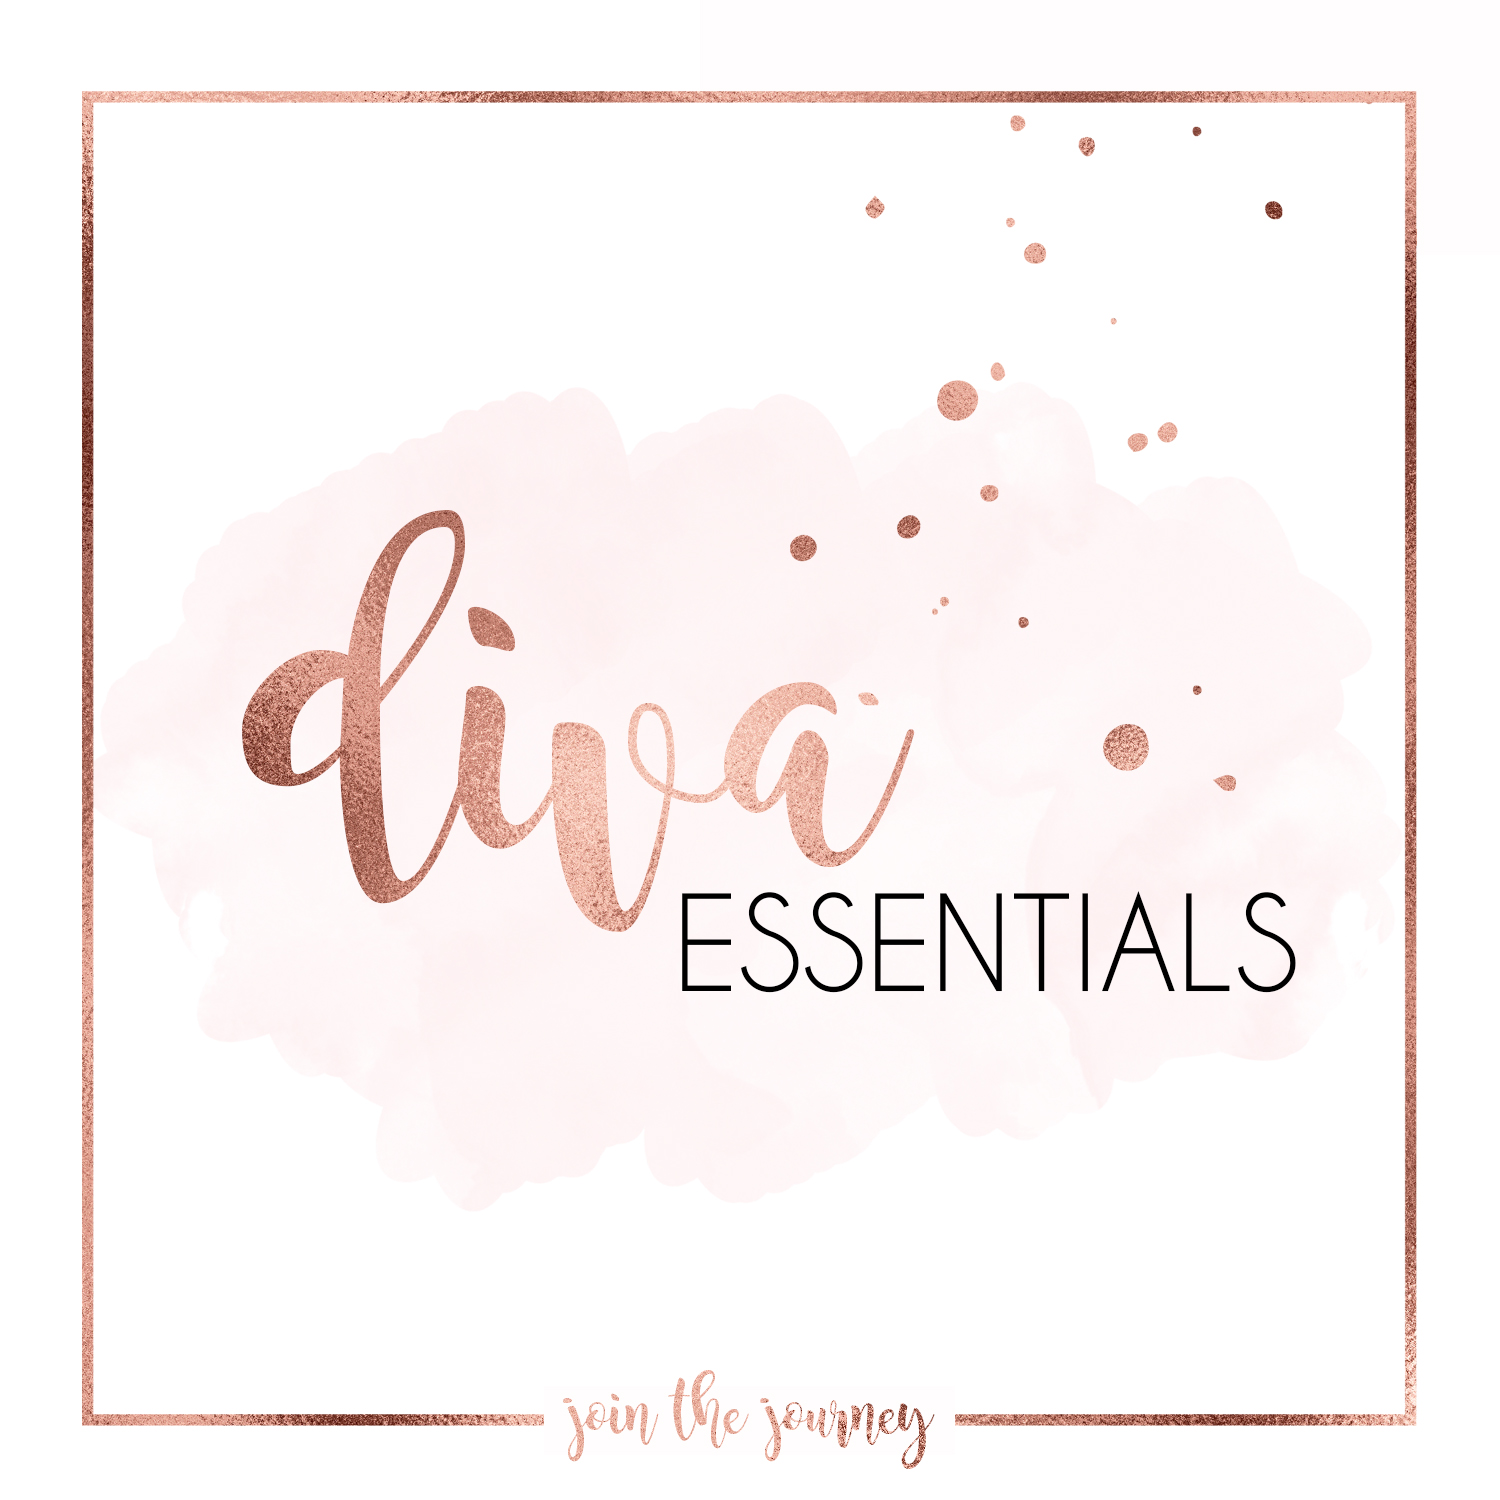 / ESSENTIAL OILS /